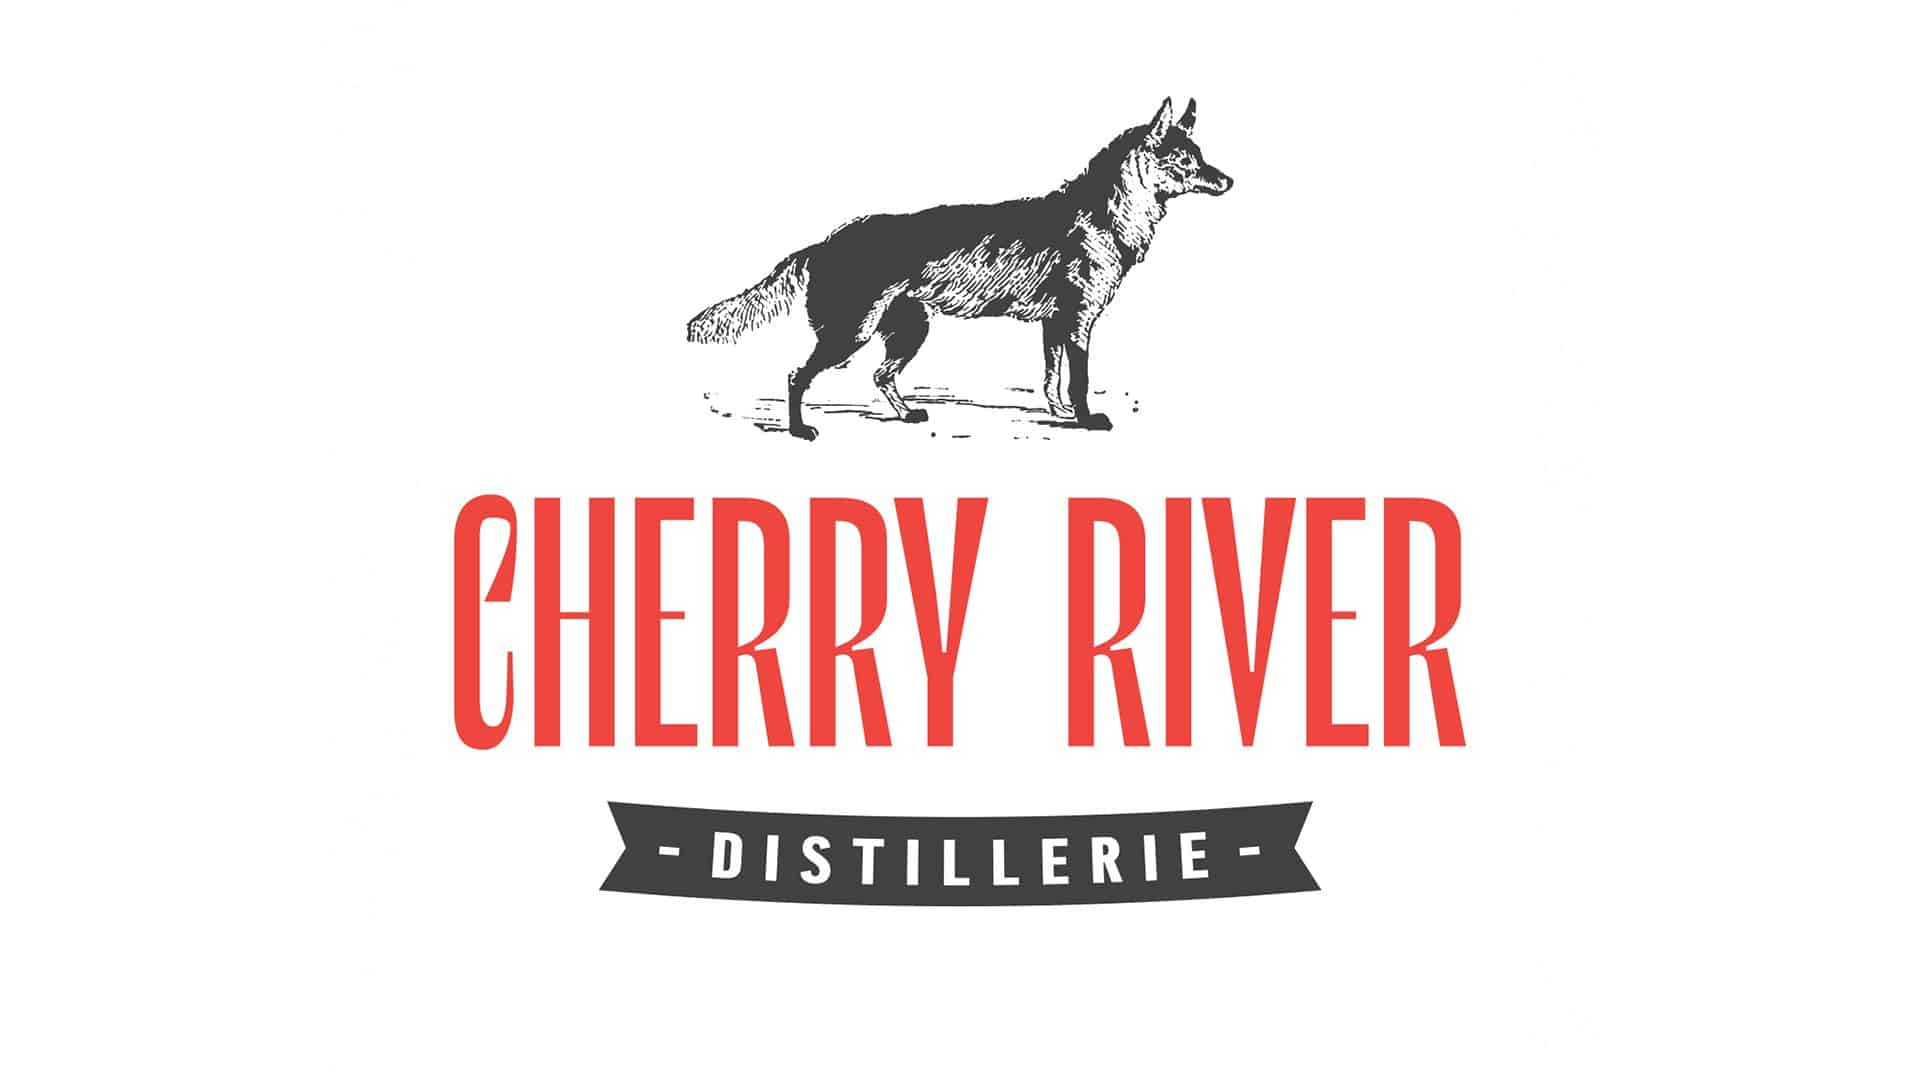 Distillerie Cherry River